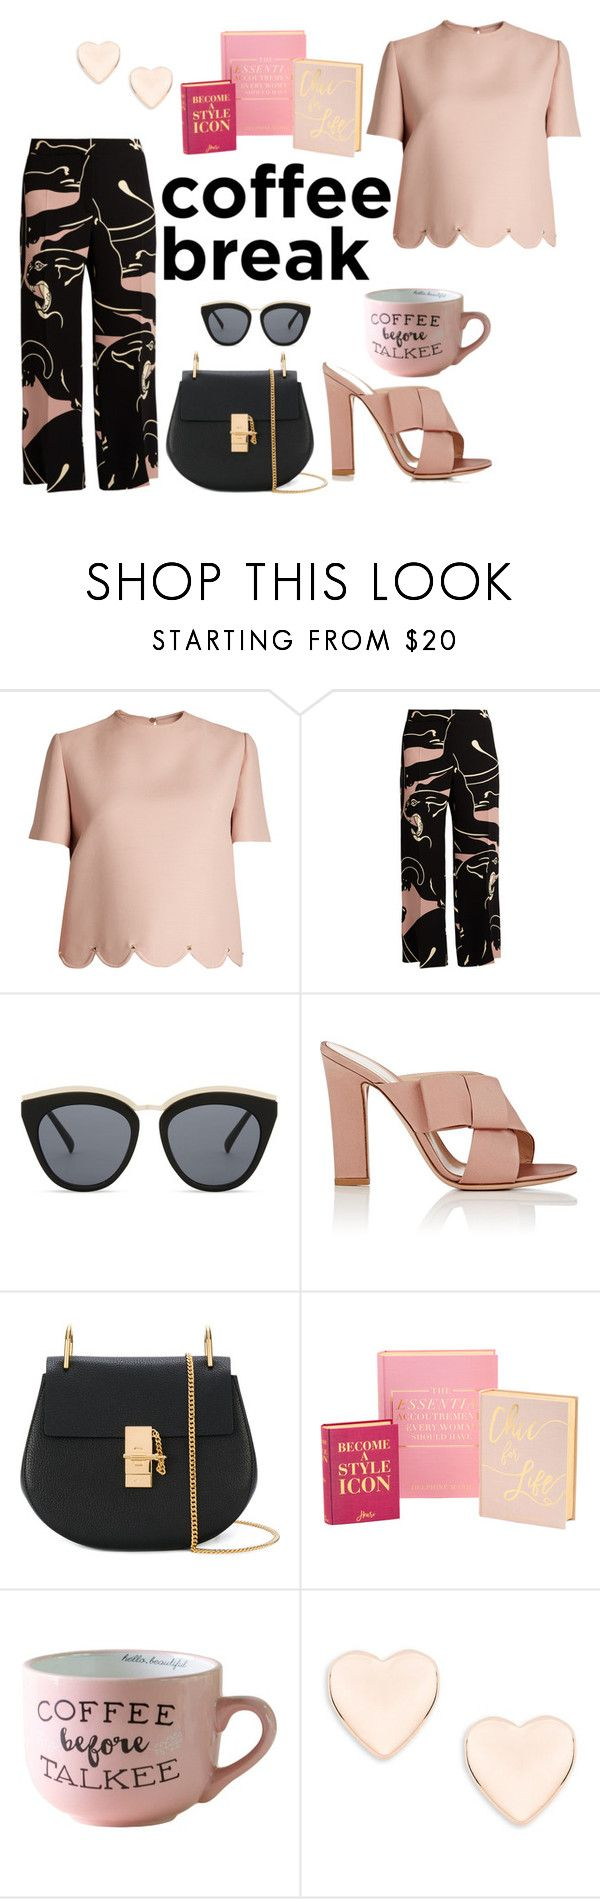 """""""Coffee before talkie."""" by youarechic on Polyvore featuring Valentino, Le Specs, Gianvito Rossi, Chloé and Ted Baker"""